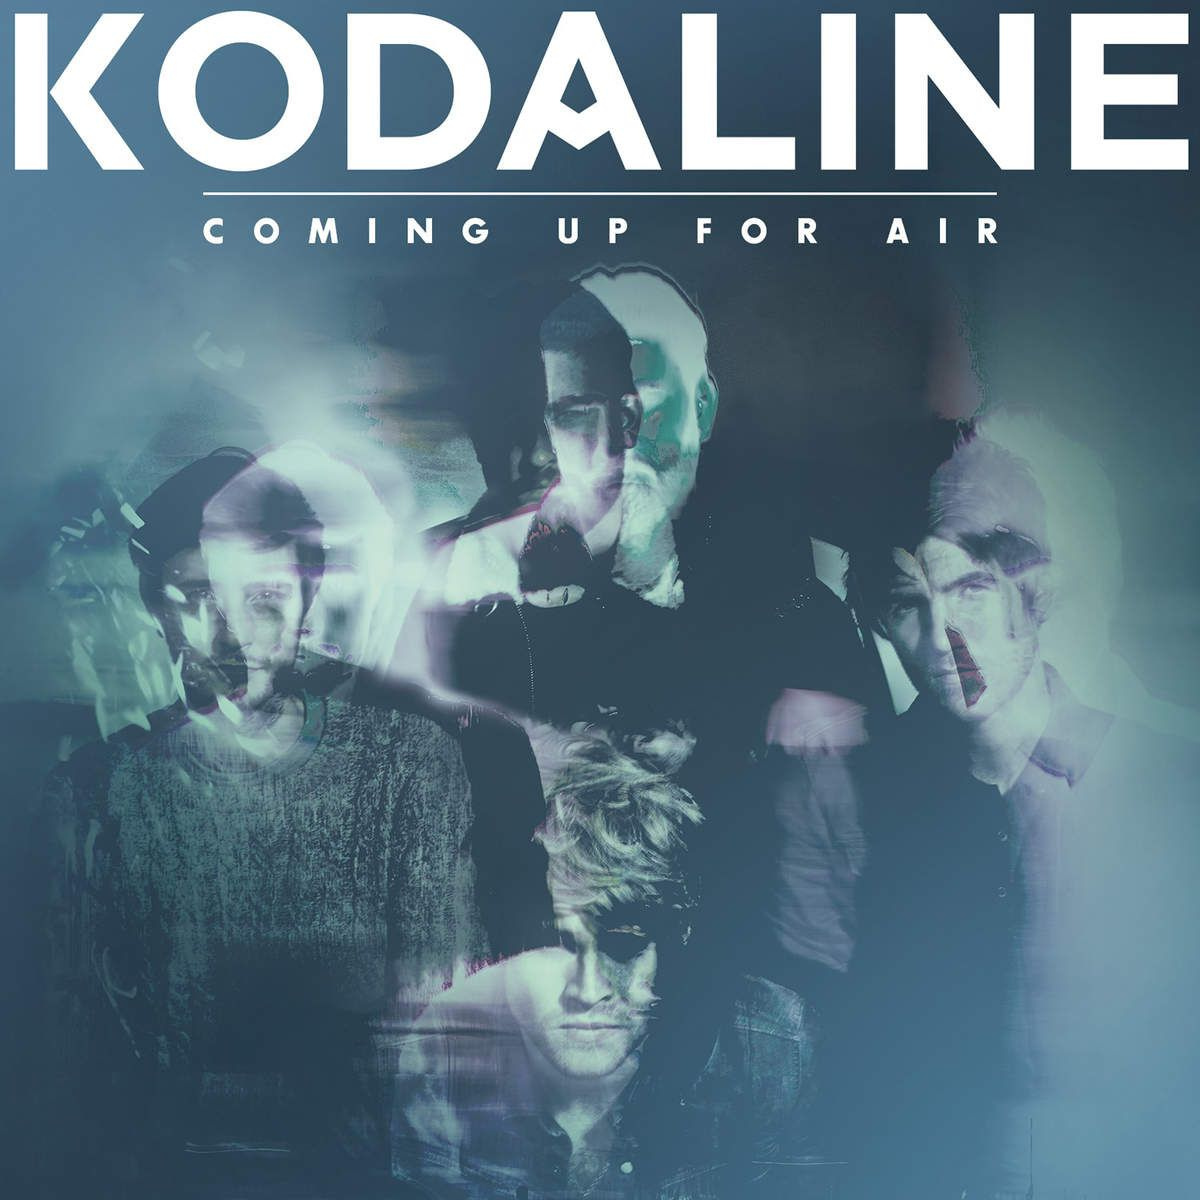 Kodaline - Coming Up For Air album cover